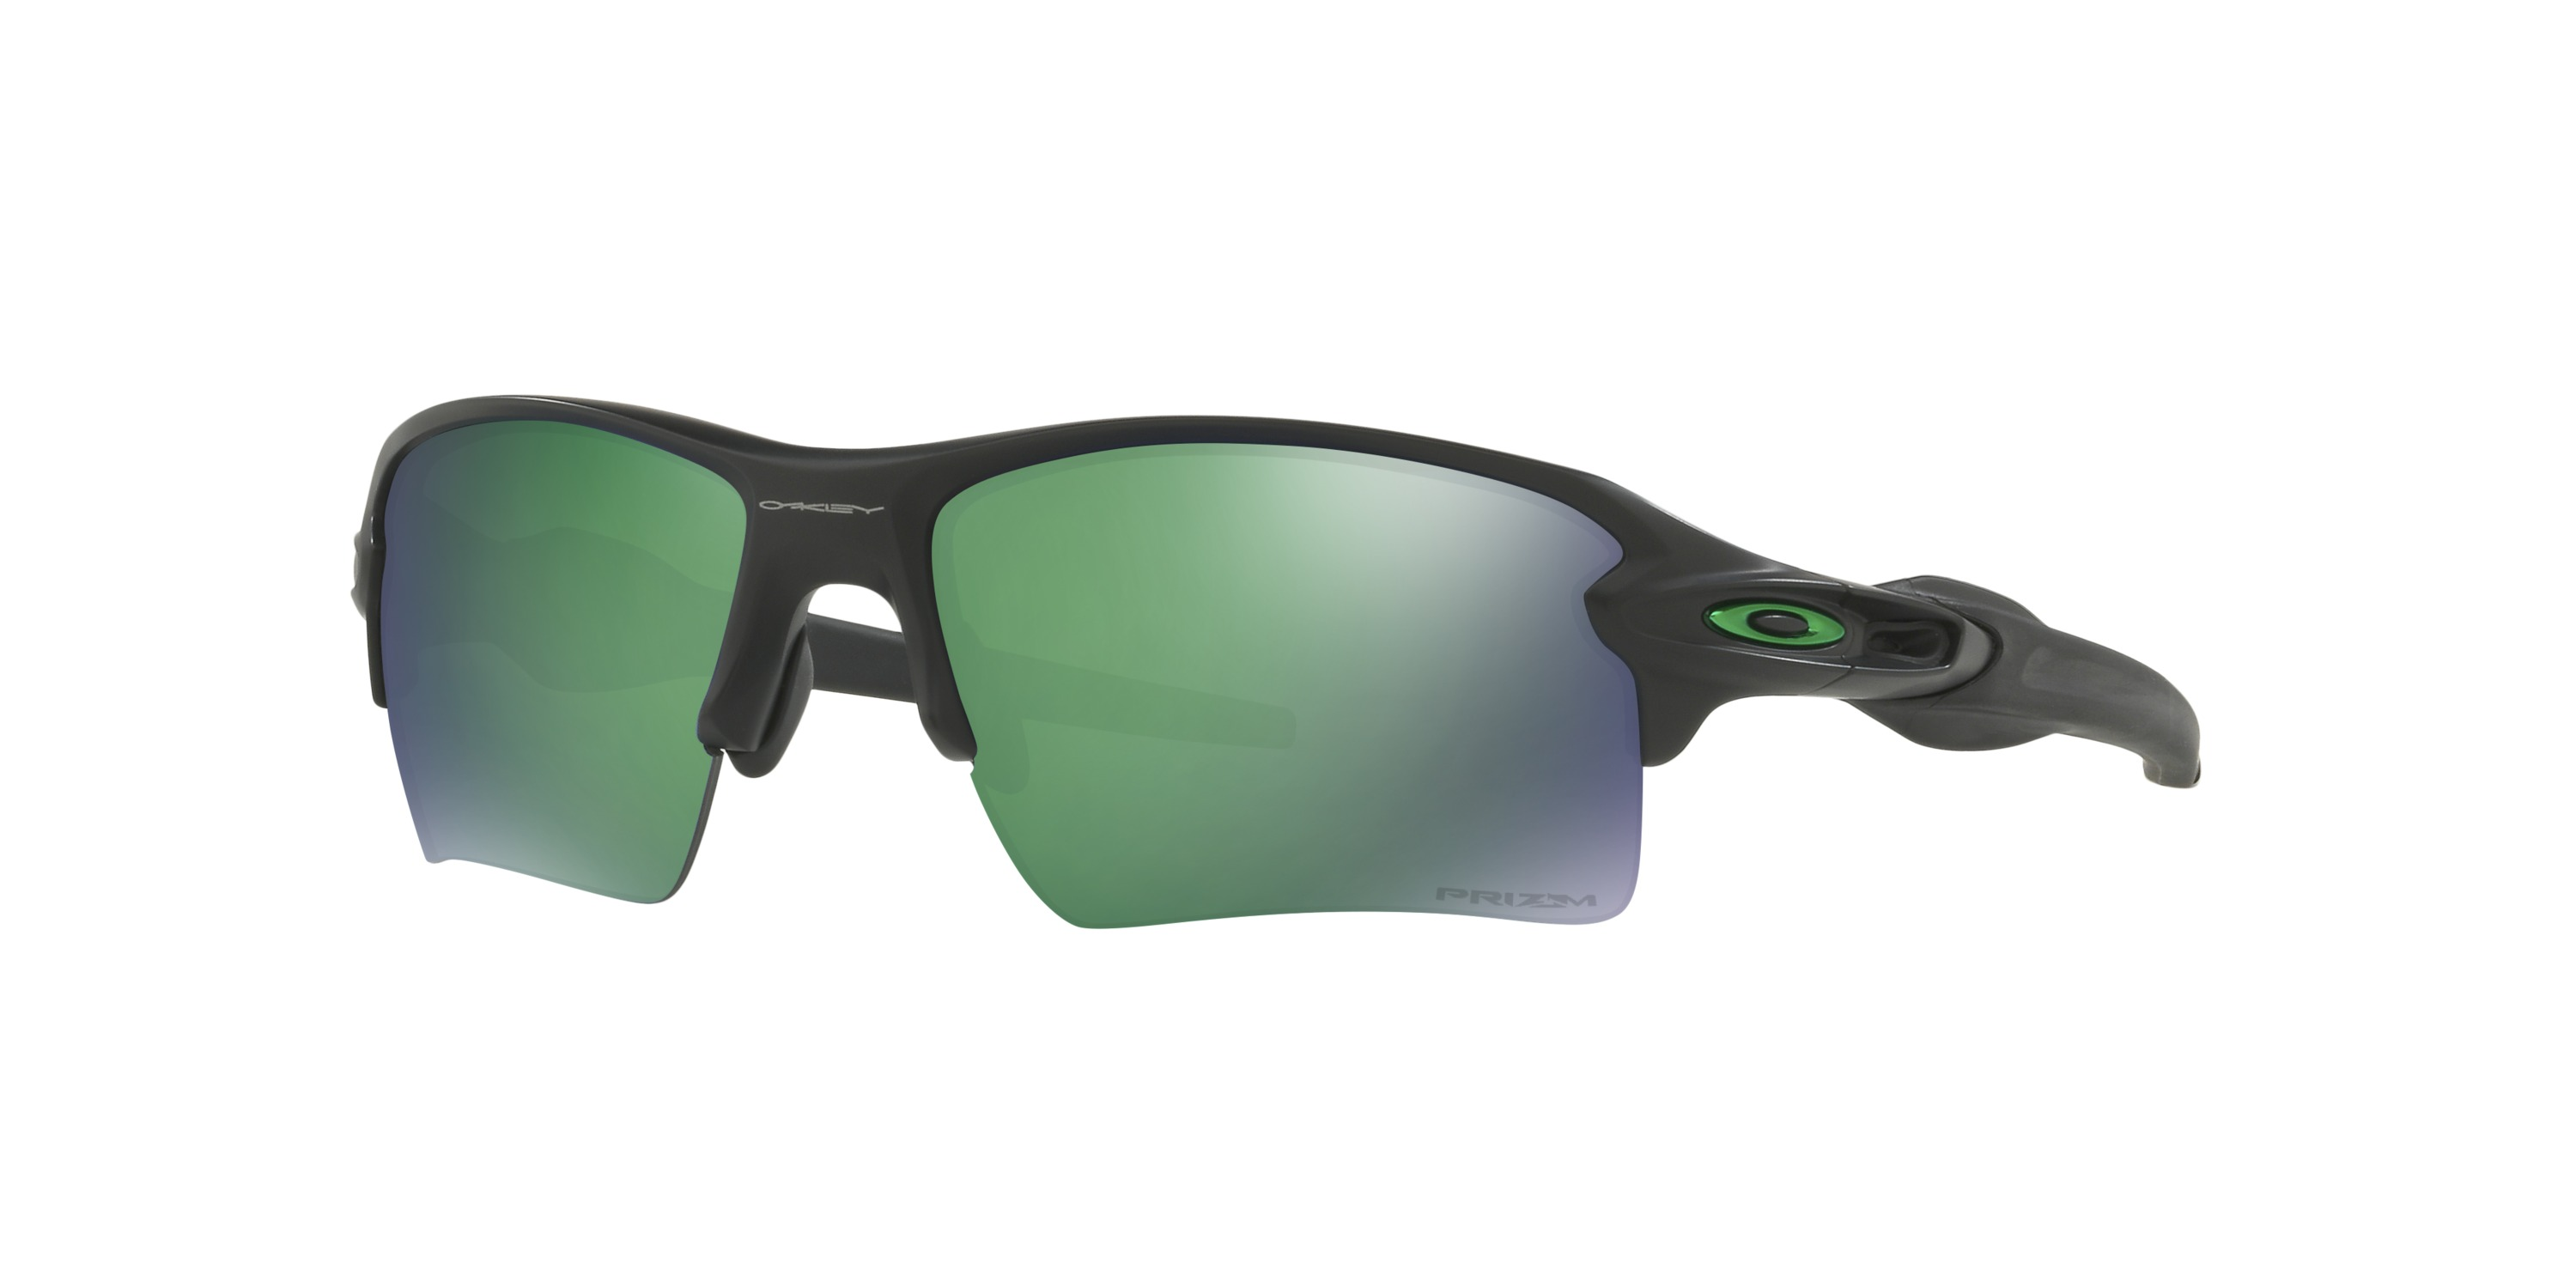 e43b835e67 Product Inquiry. Name  . Email  . Phone  . Subject FLAK 2.0 XL MATTE BLACK  JADE  PRIZM POLARIZED